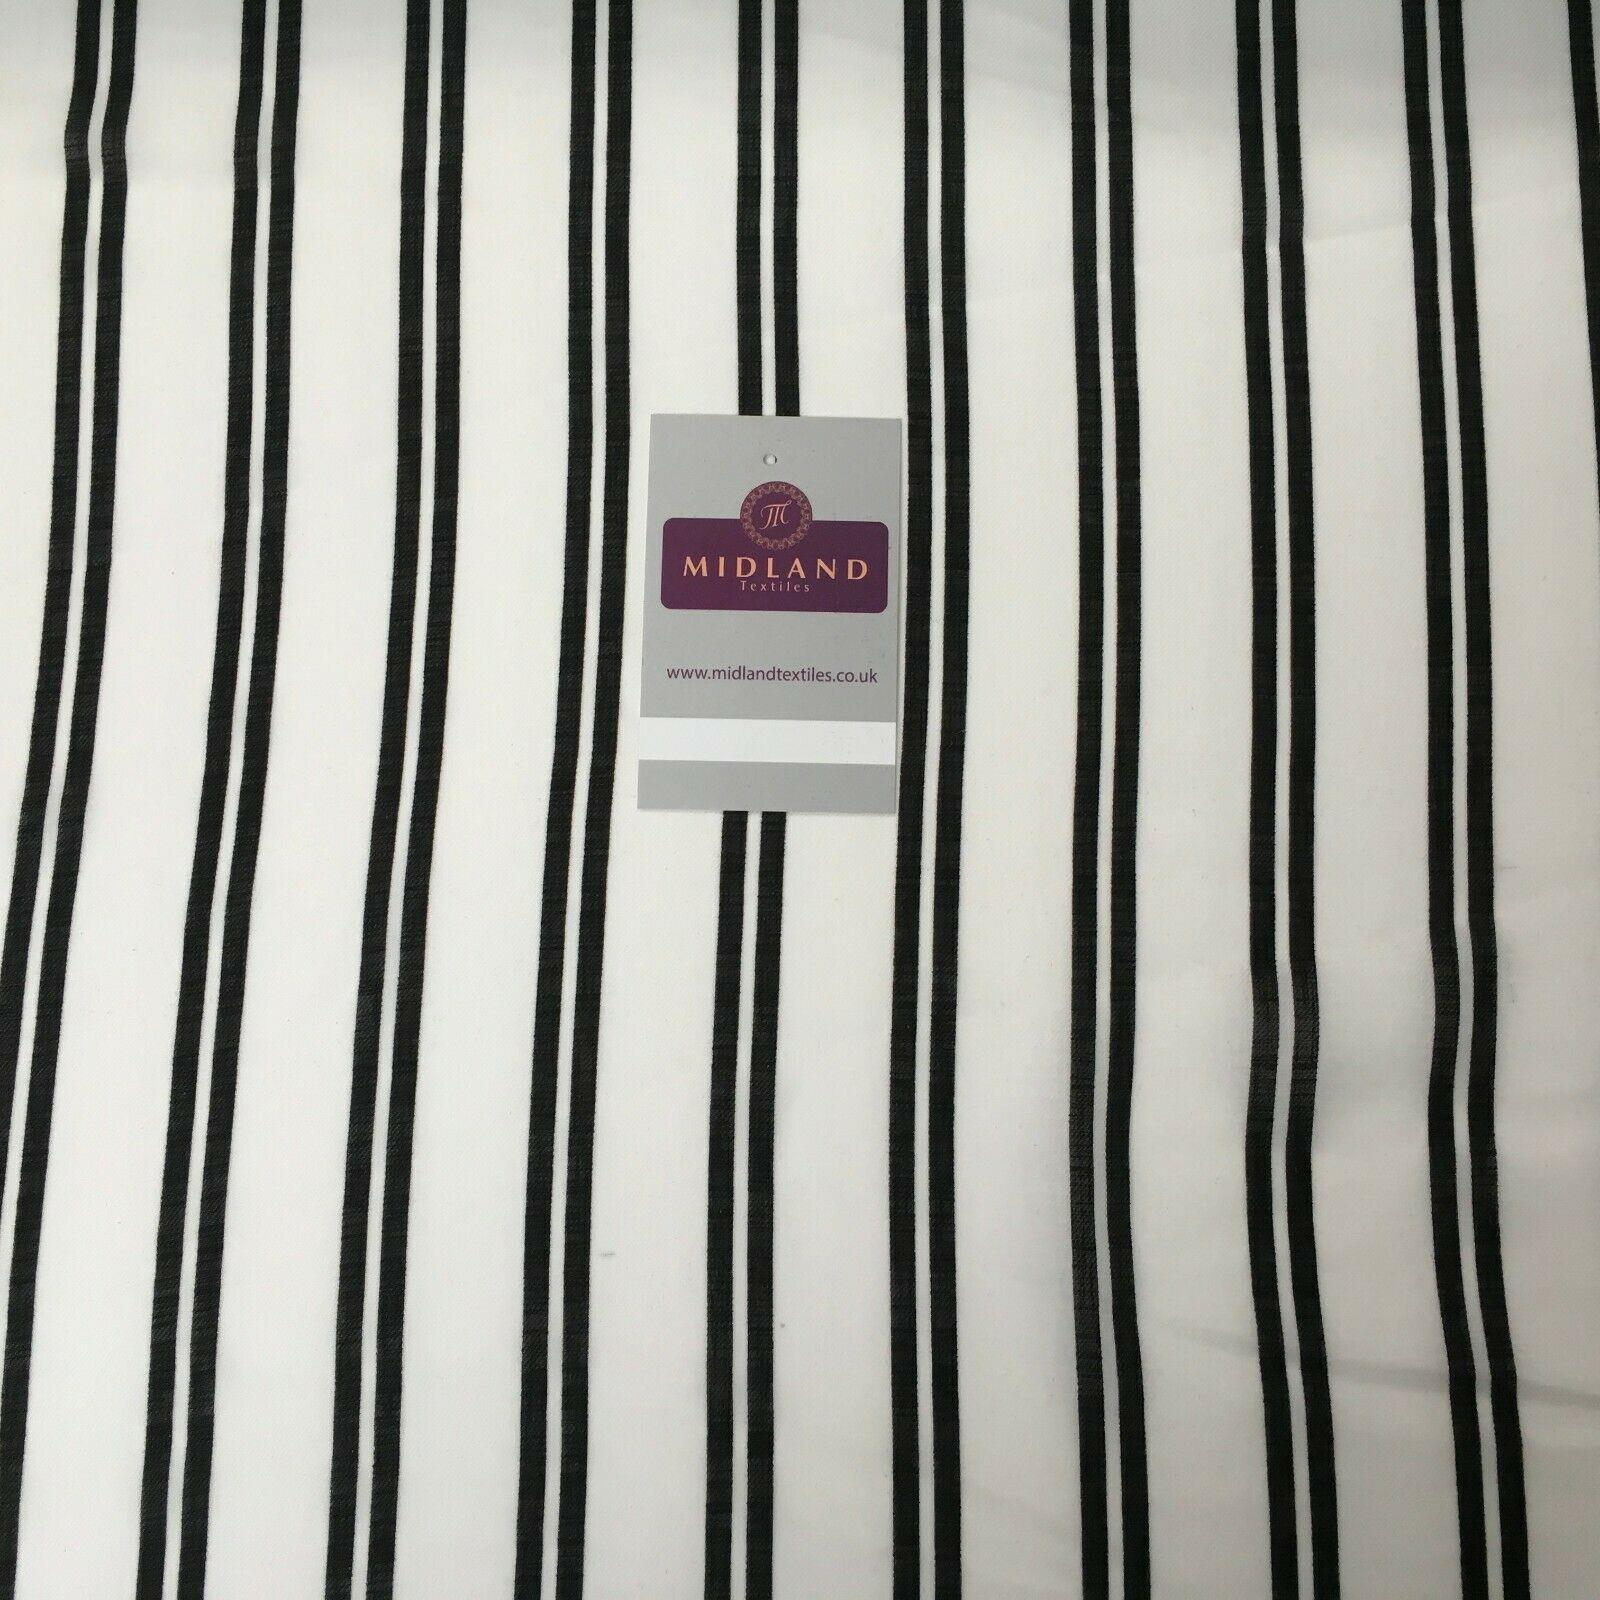 Ivory & Black Stripped Georgette crepe Linen effect fabric 150cm wide MK1095-9